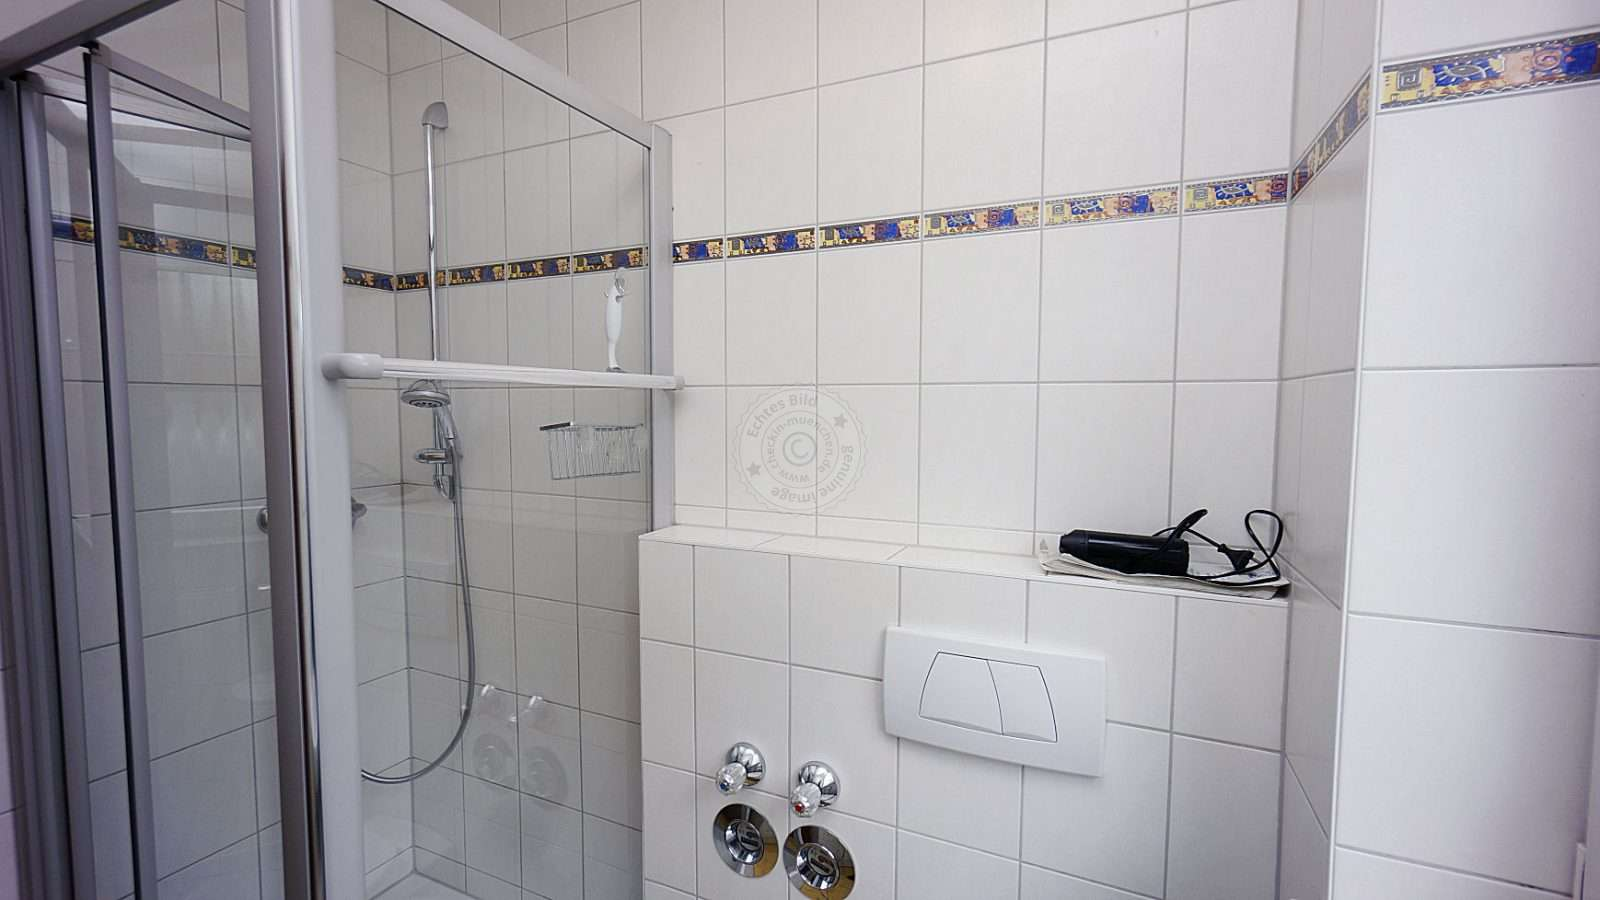 Spacious, well-kept shower